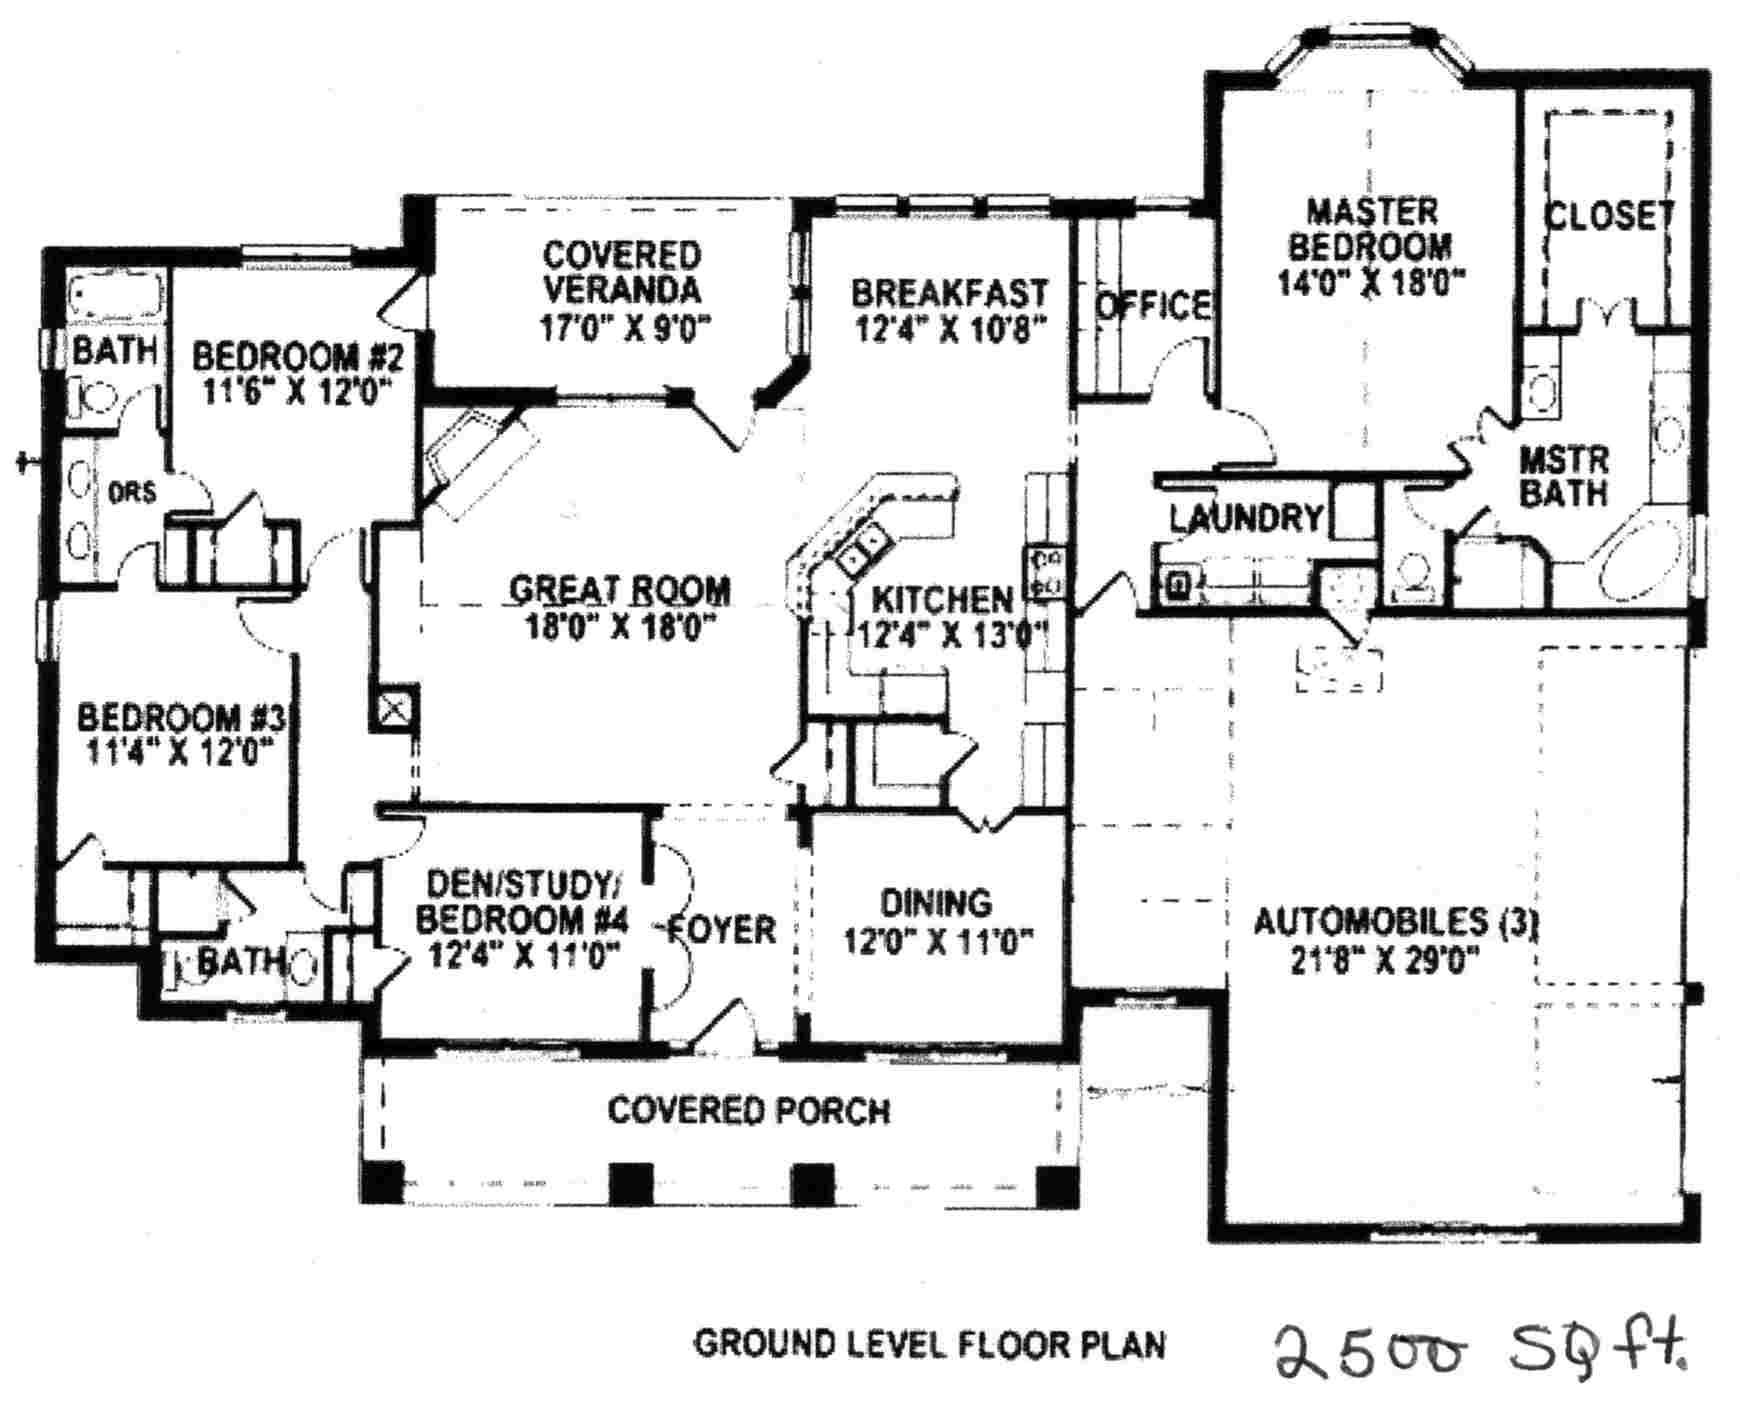 2500 sq ft house plans peltier builders inc about us for 2500 sq ft apartment plans